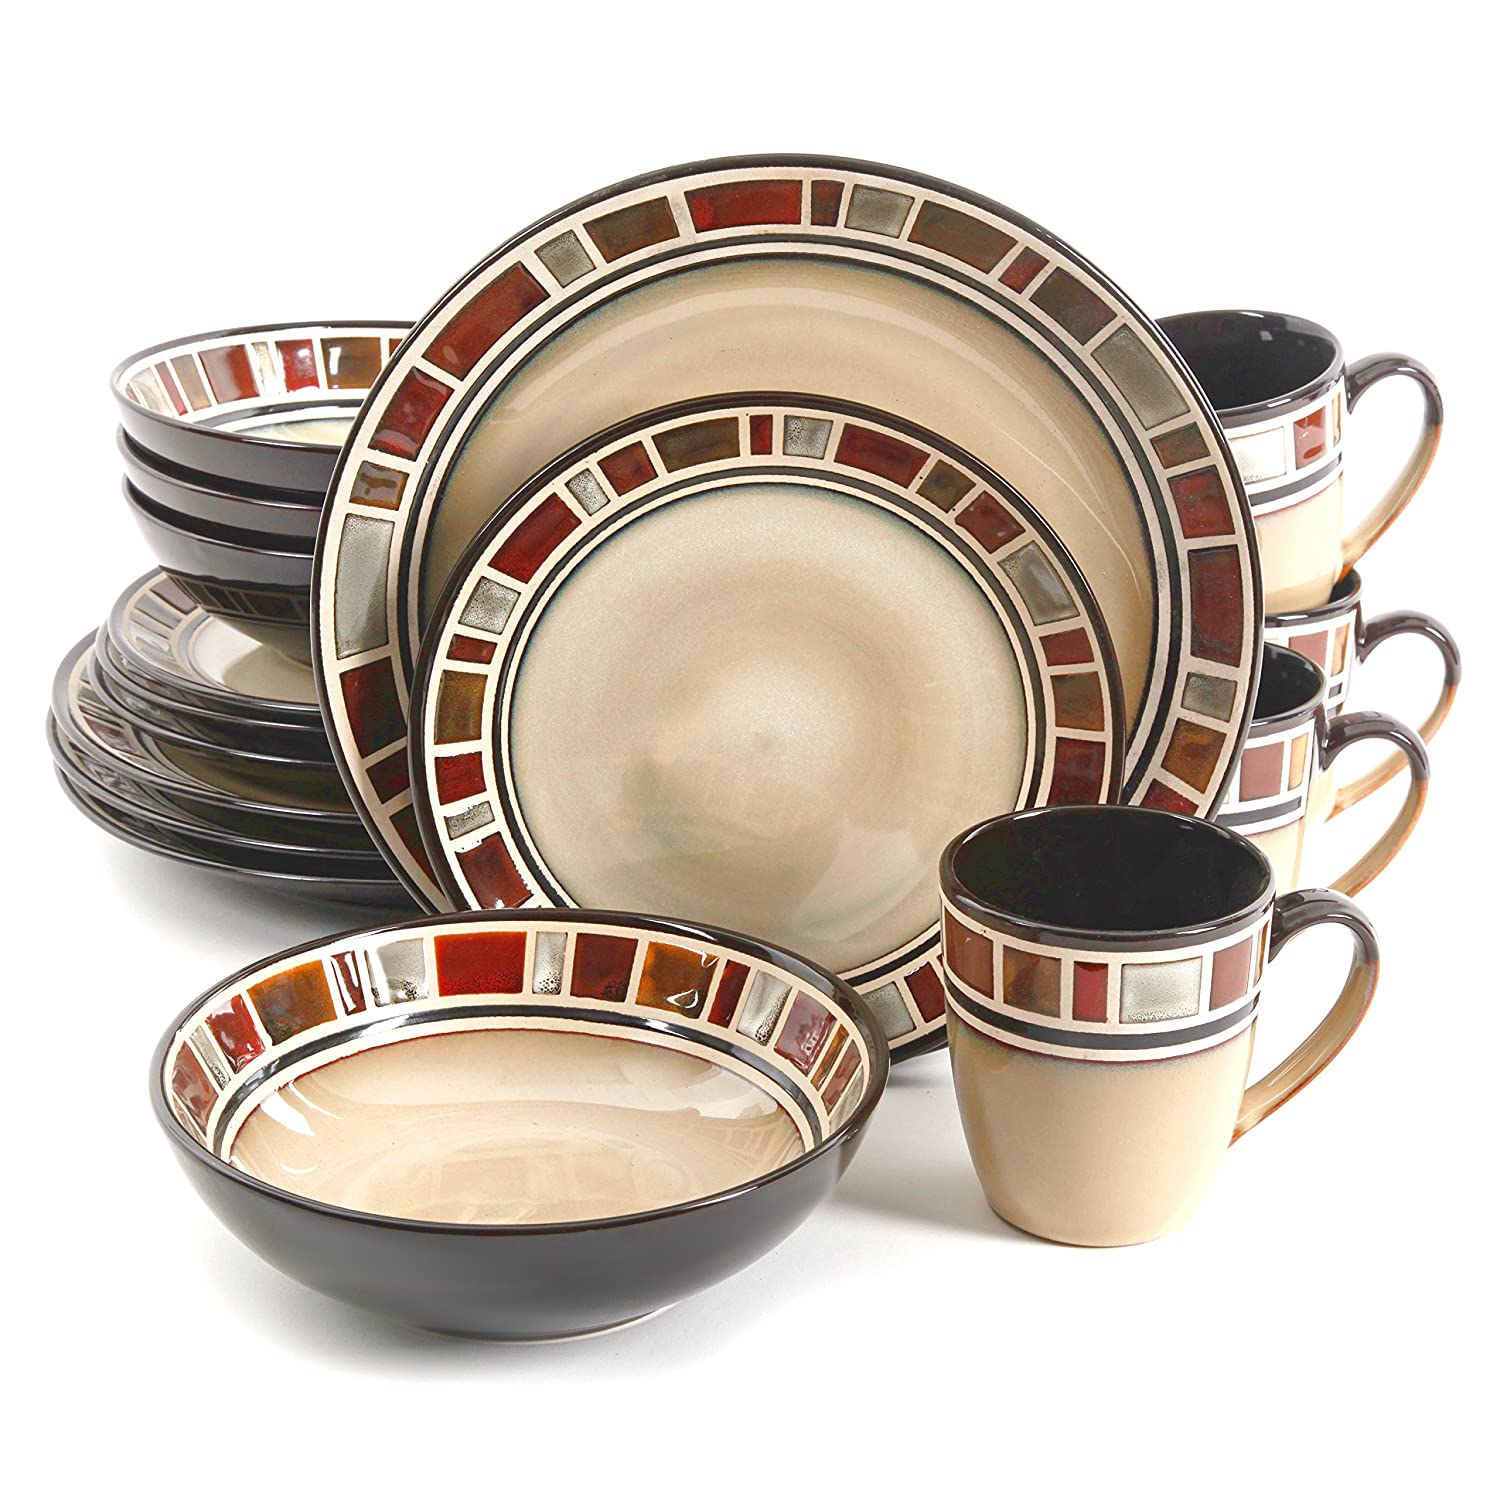 Amazon.com | Gibson Elite Cimarron 16pc Dinnerware Set - service for 4 - includes 4 dinner plates - 4 dessert plates - 4 cereal bowls - 4 mugs Dinnerware ...  sc 1 st  Amazon.com & Amazon.com | Gibson Elite Cimarron 16pc Dinnerware Set - service for ...